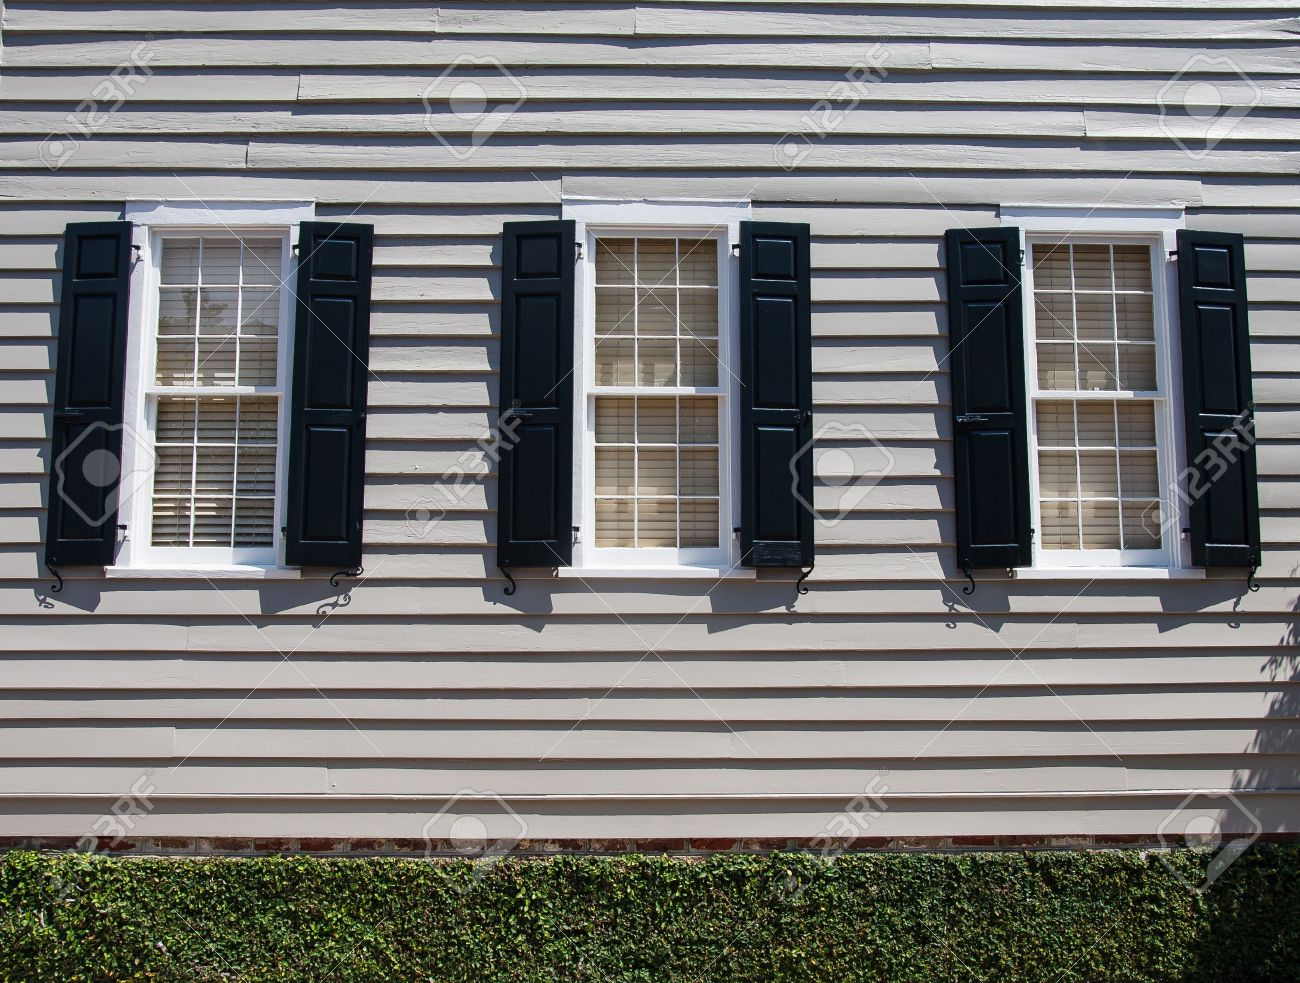 Black shutters for sophistication